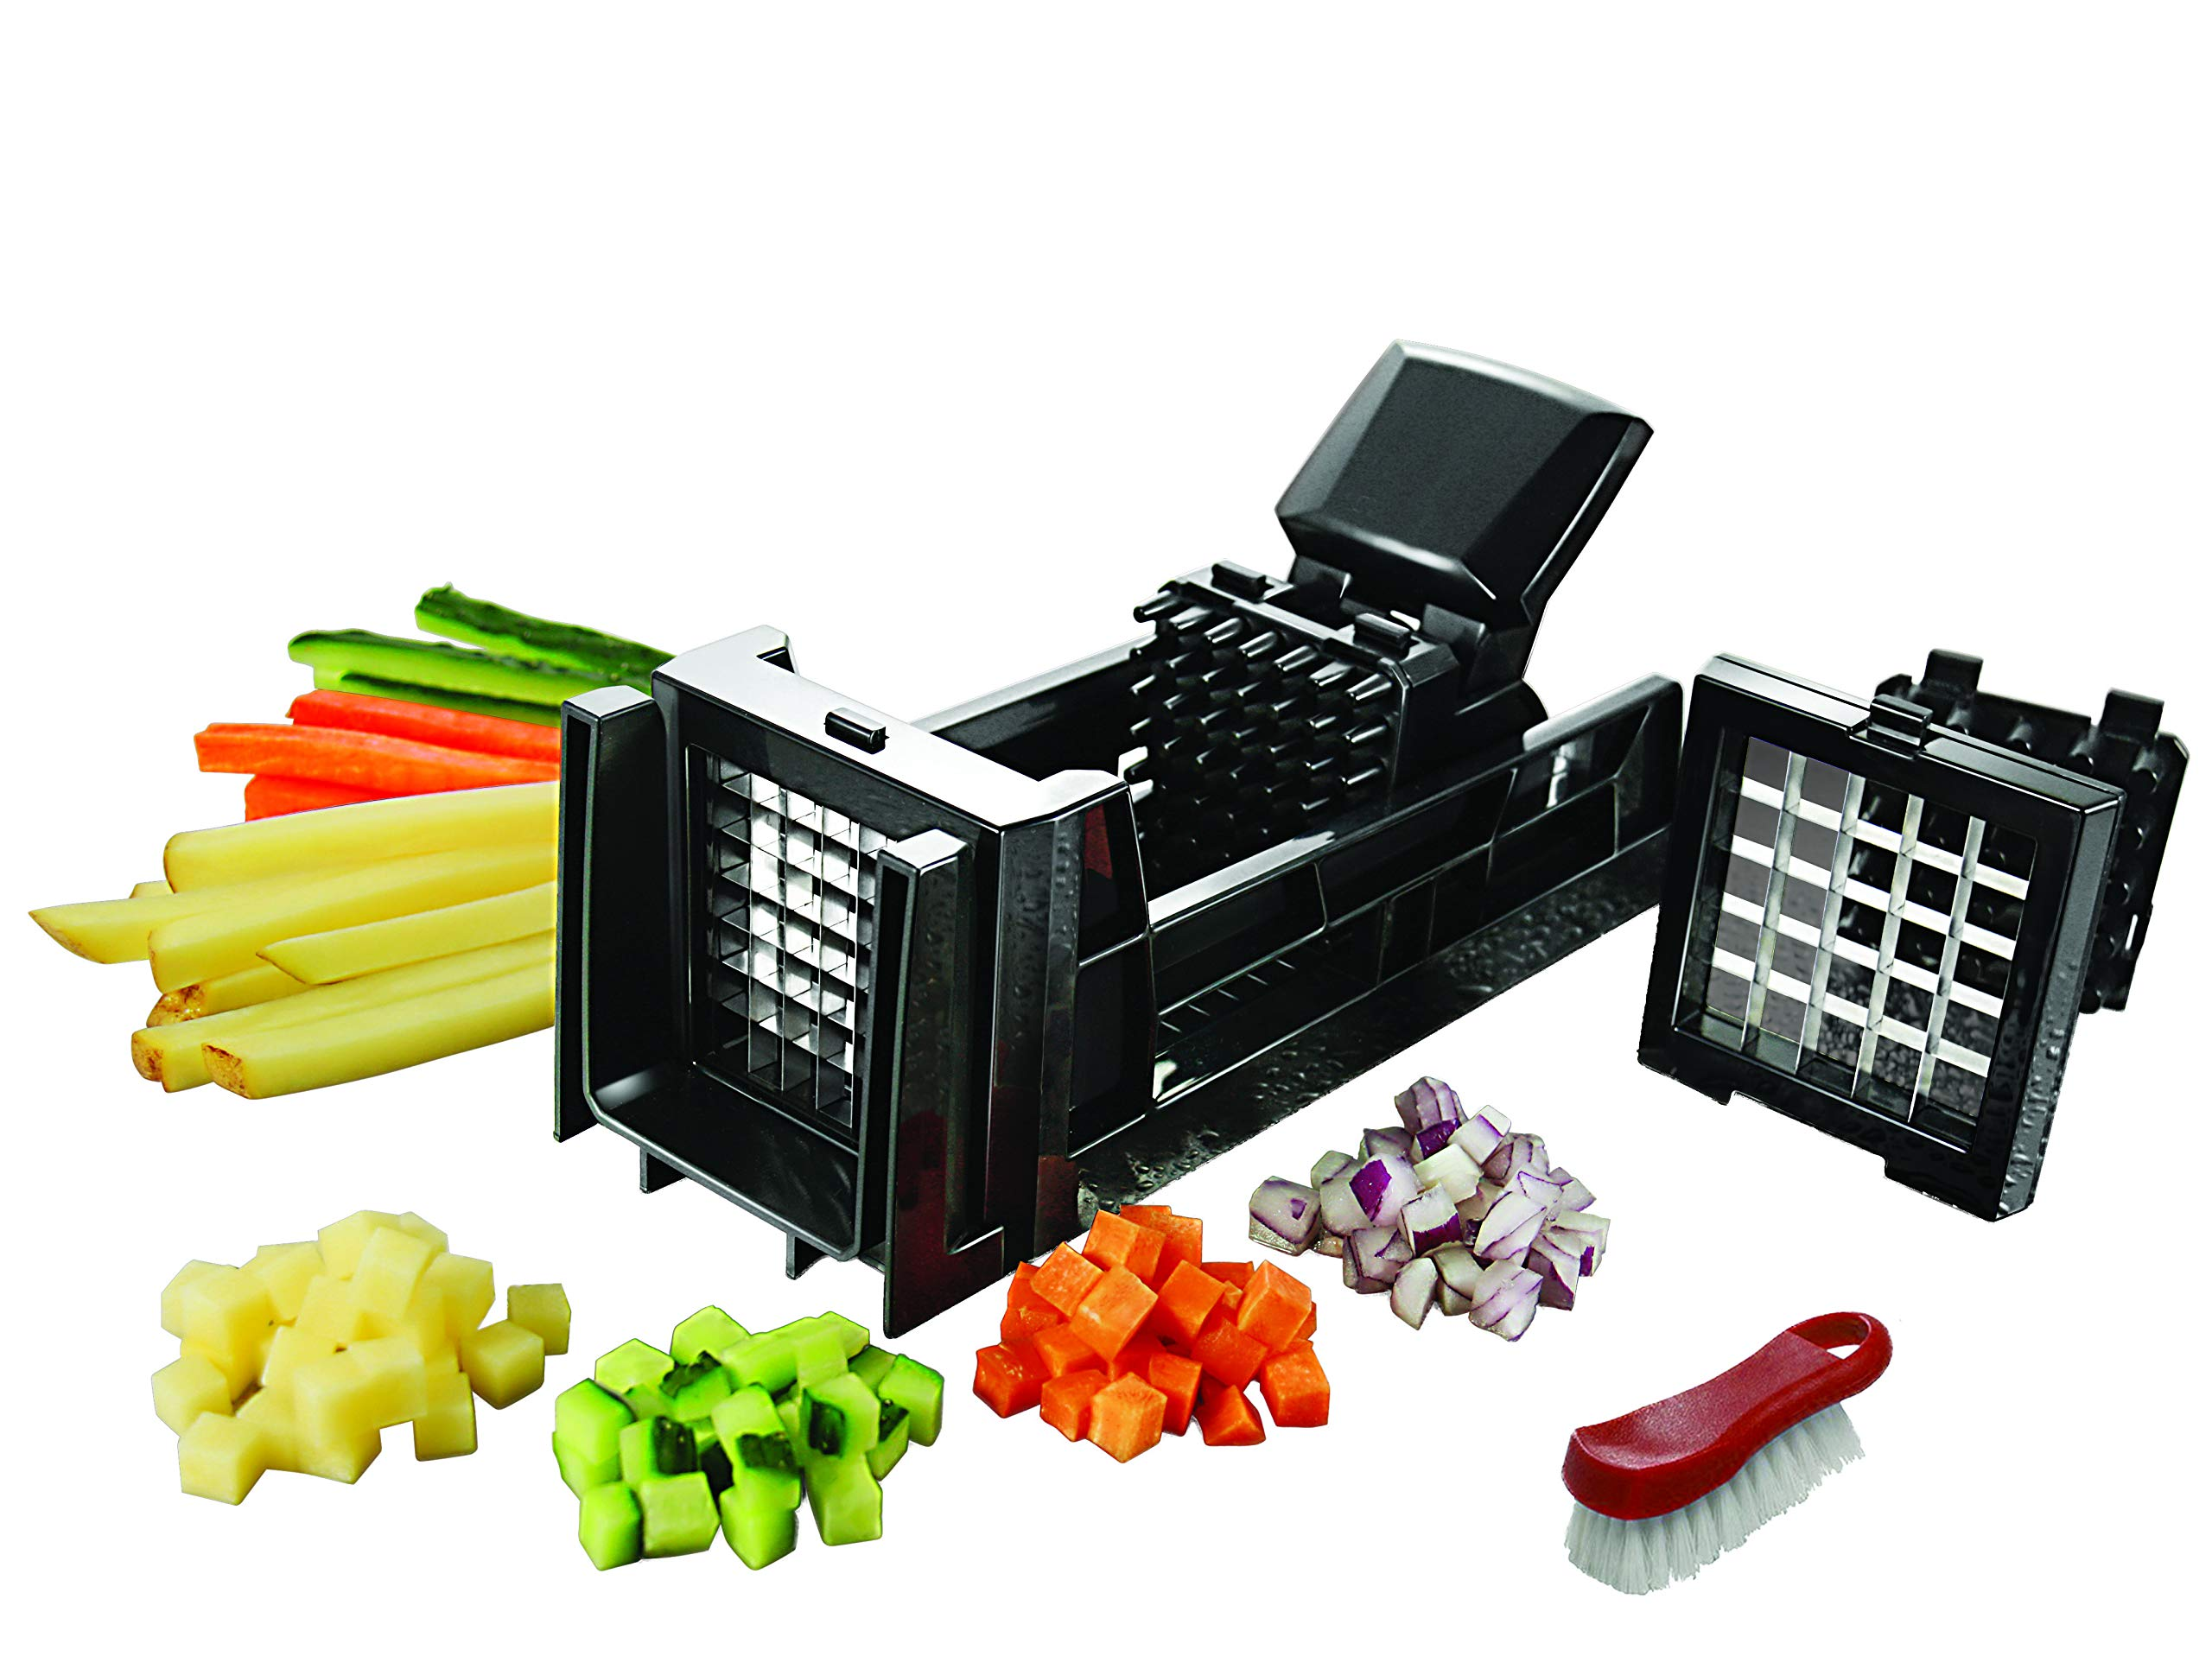 Tiger Chef French Fry Cutter and Easy Vegetable Dicer Chopper With 2 Interchangeable Blades - Also Great for Onions, Carrots, Cucumbers and more - Comes with a Cleaning Brush by Tiger Chef